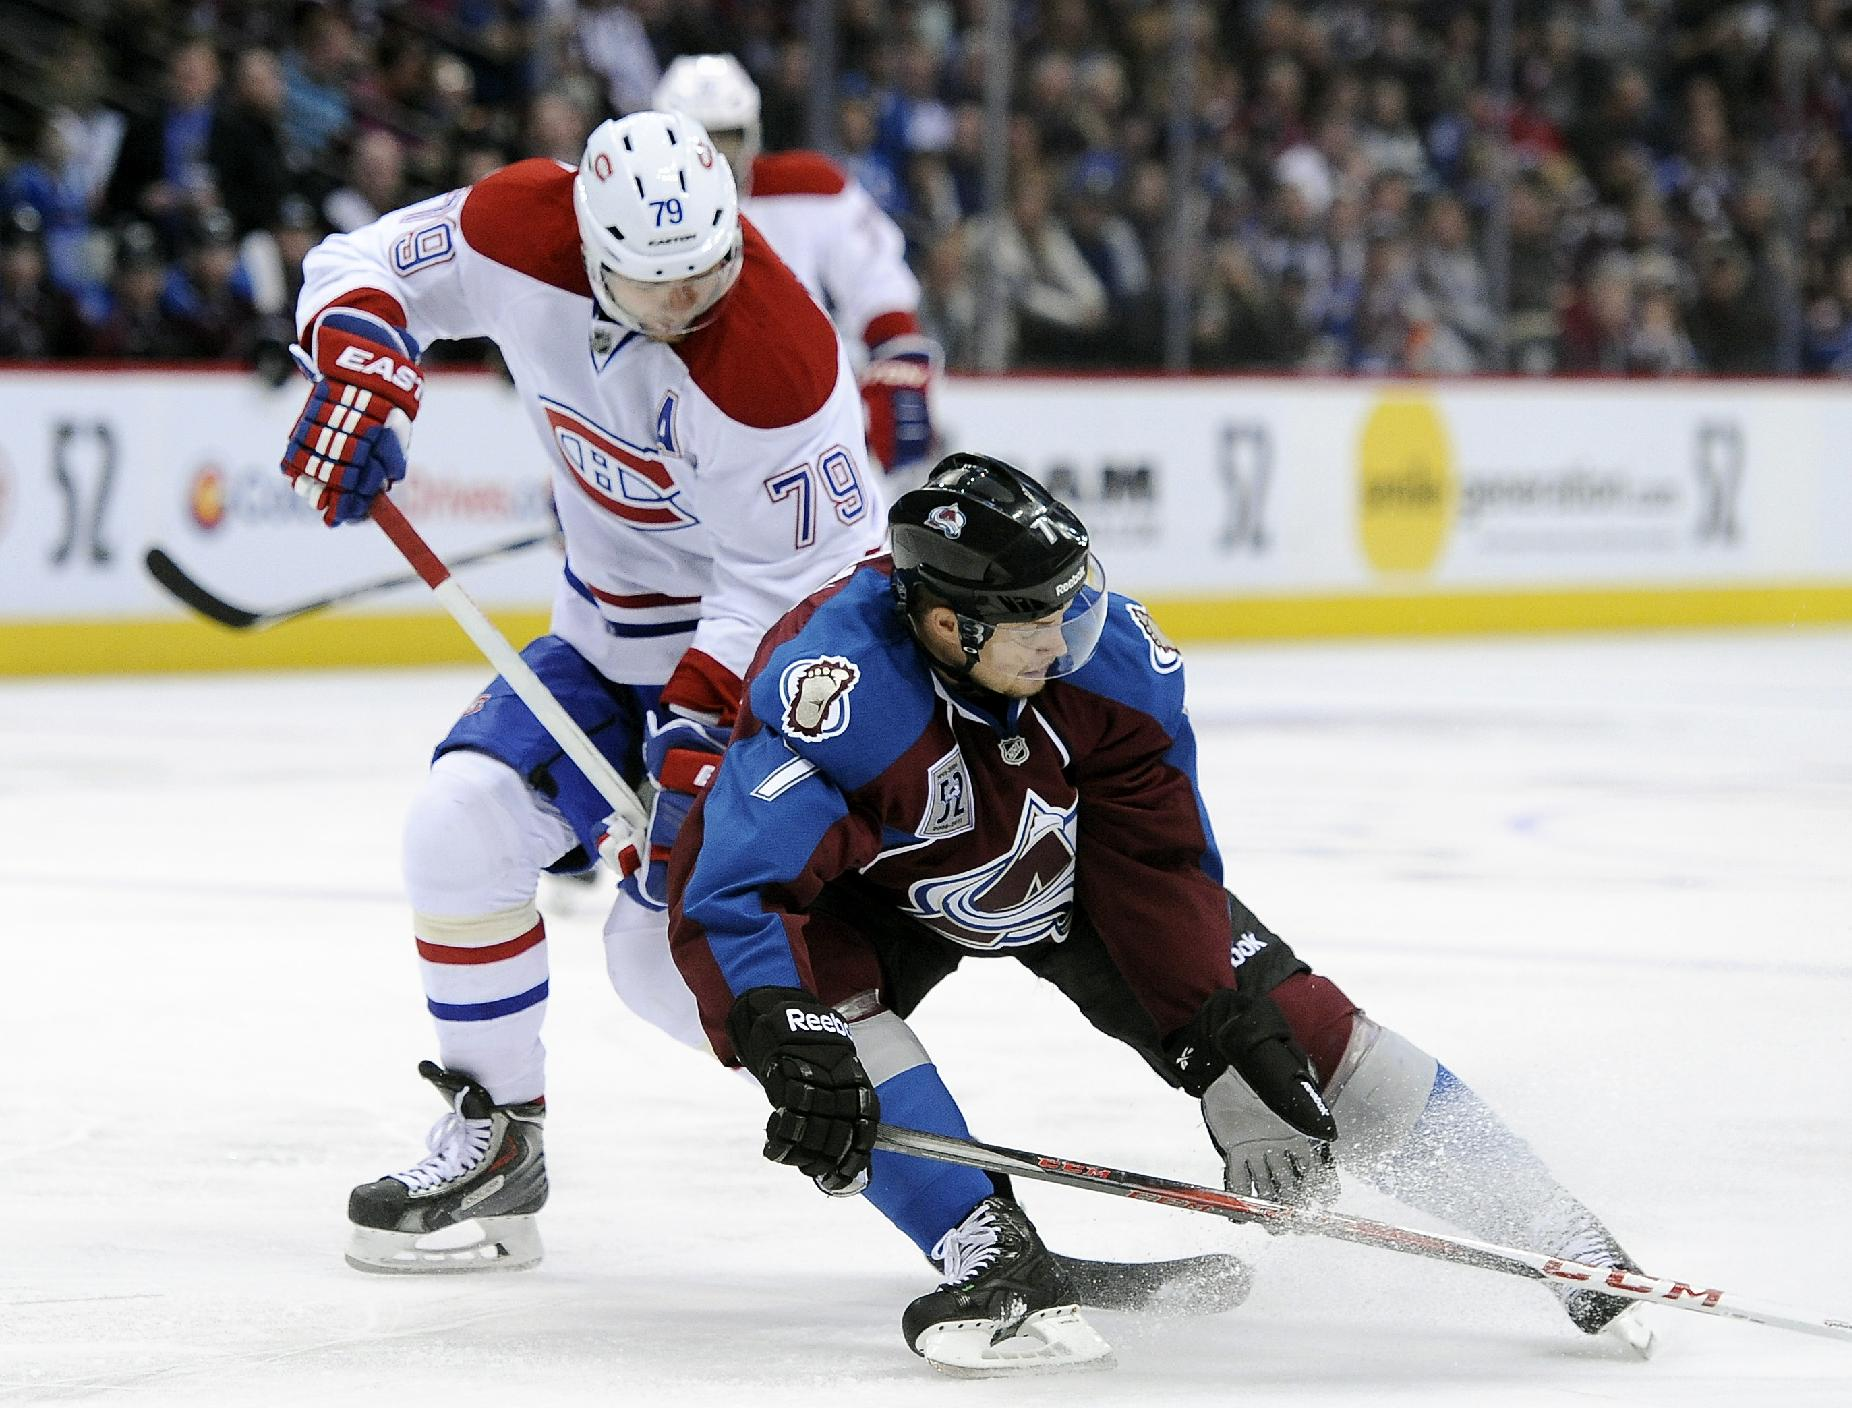 Colorado Avalanche center John Mitchell, right, tries to steal the puck from Montreal Canadiens defenseman Andrei Markov, left, of Russia, in the second period of an NHL hockey game on Saturday, Nov. 2, 2013, in Denver